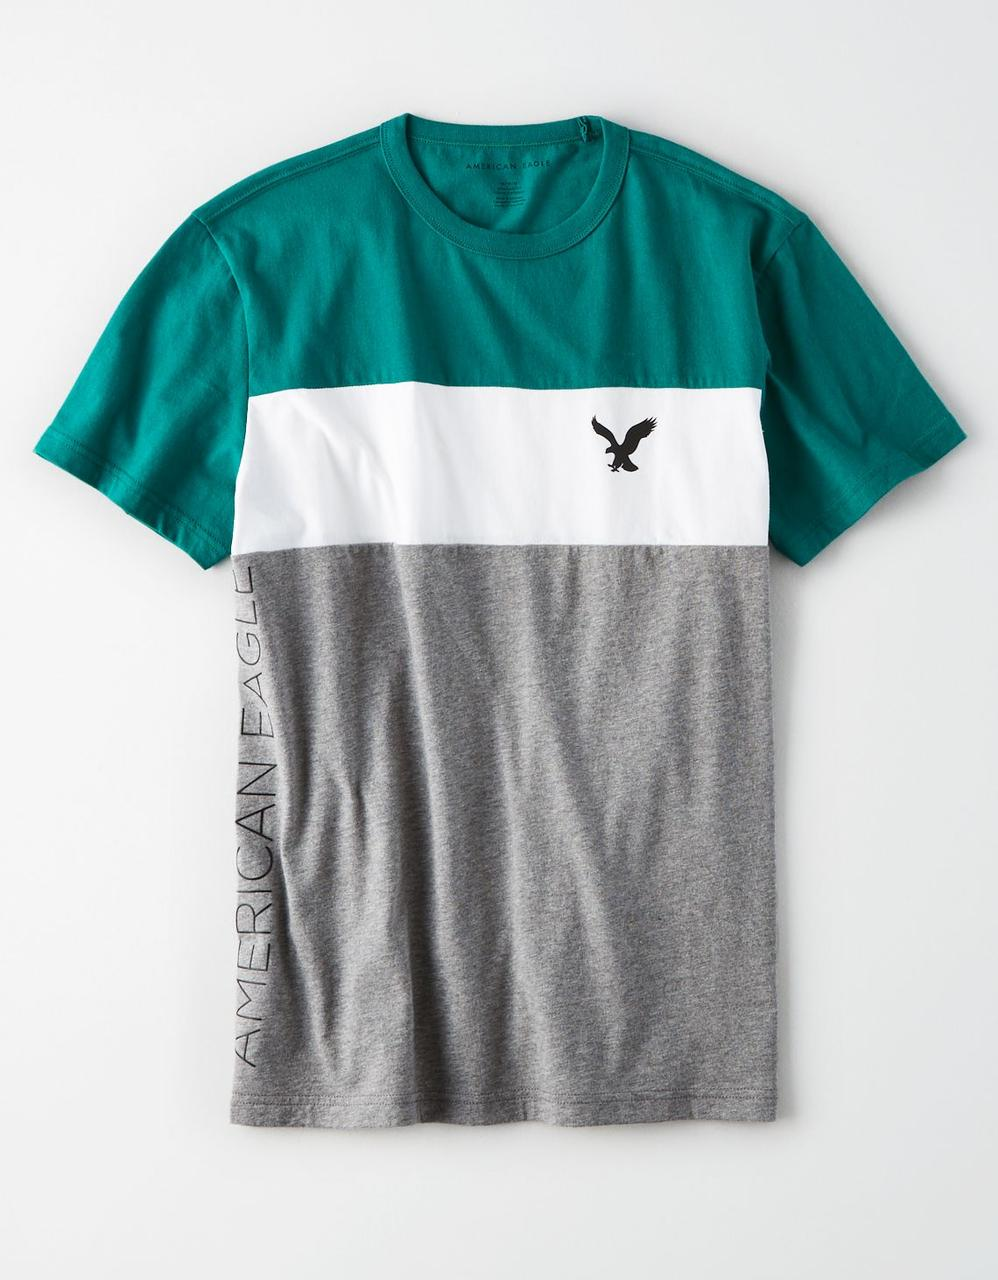 17d2e274 American Eagle T-Shirts, AE COLORBLOCK GRAPHIC TEE for Men at Aeo.in